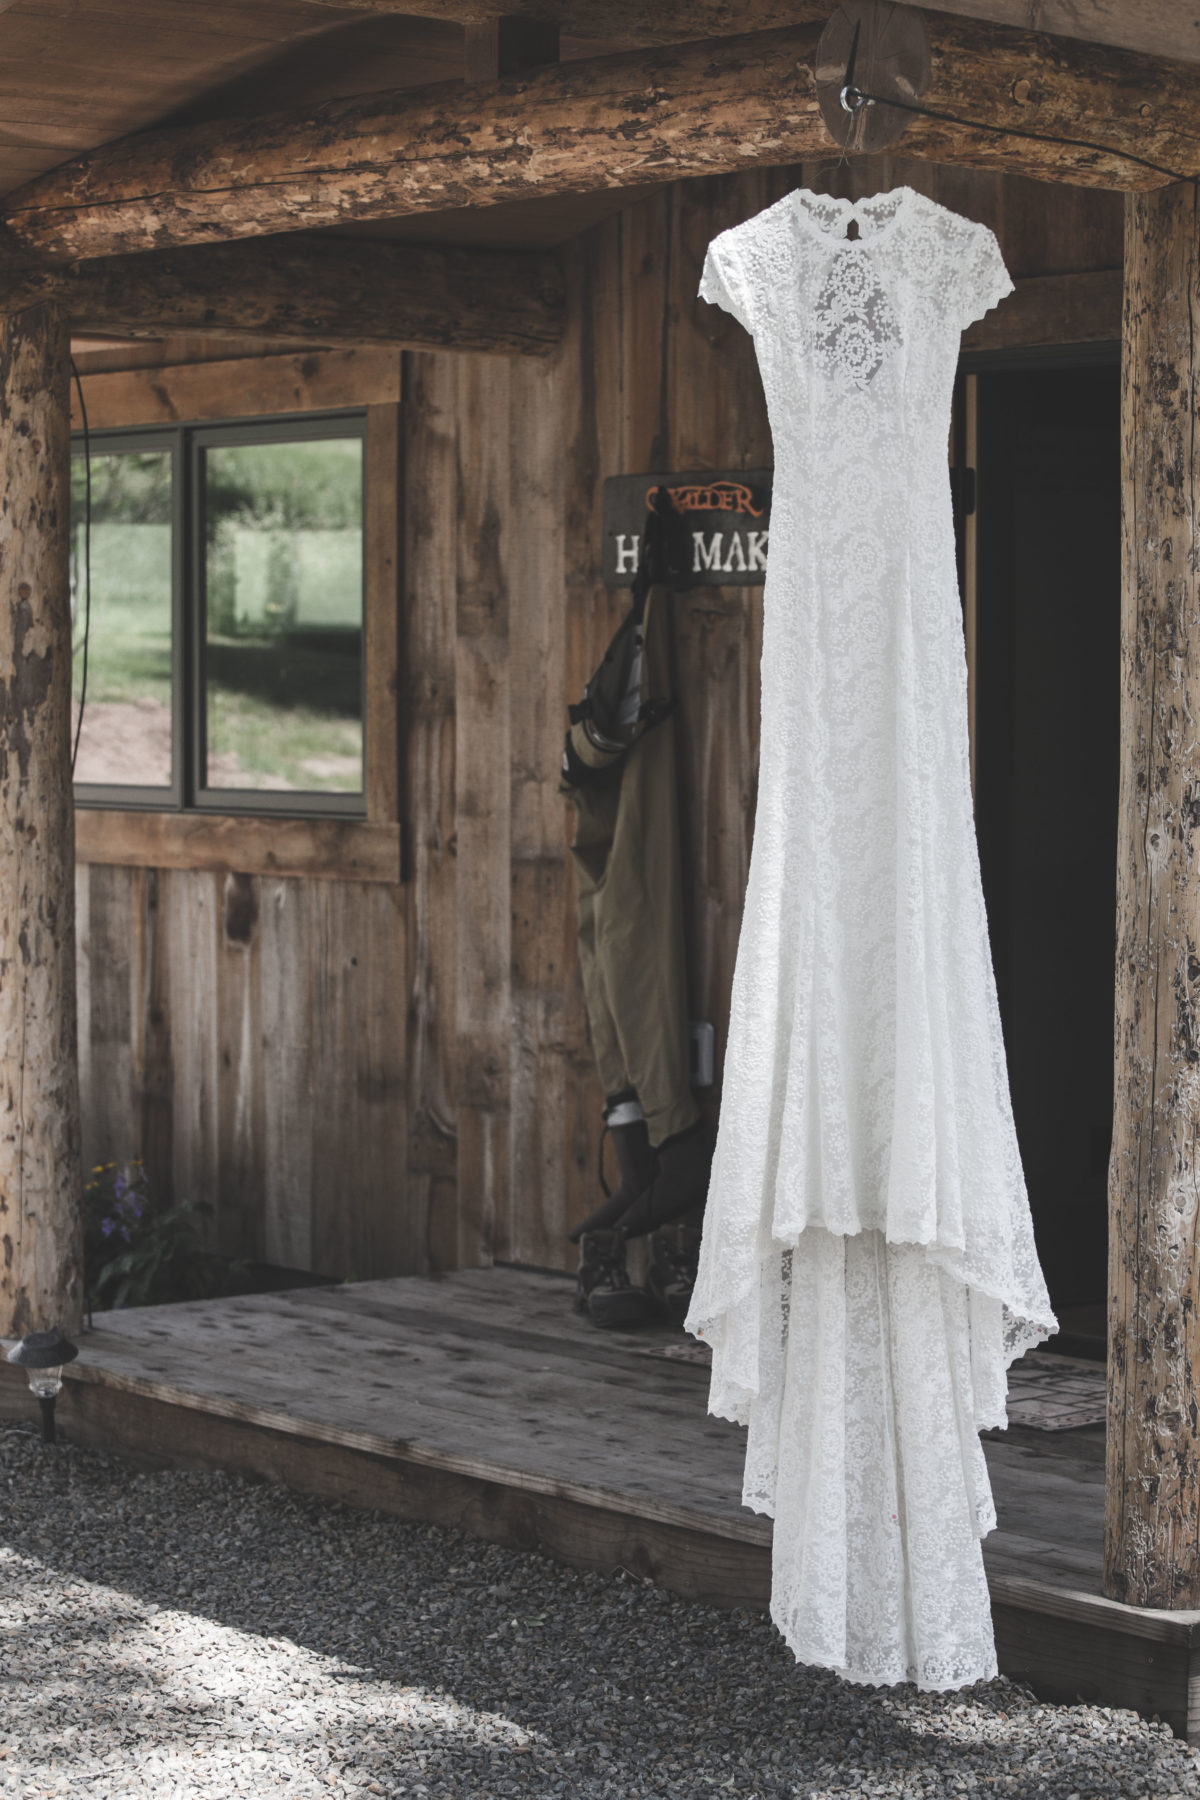 the-alice-dress-from-dreamers-and-lovers-shown-in-white-lace-with-long-train-backless-rustic